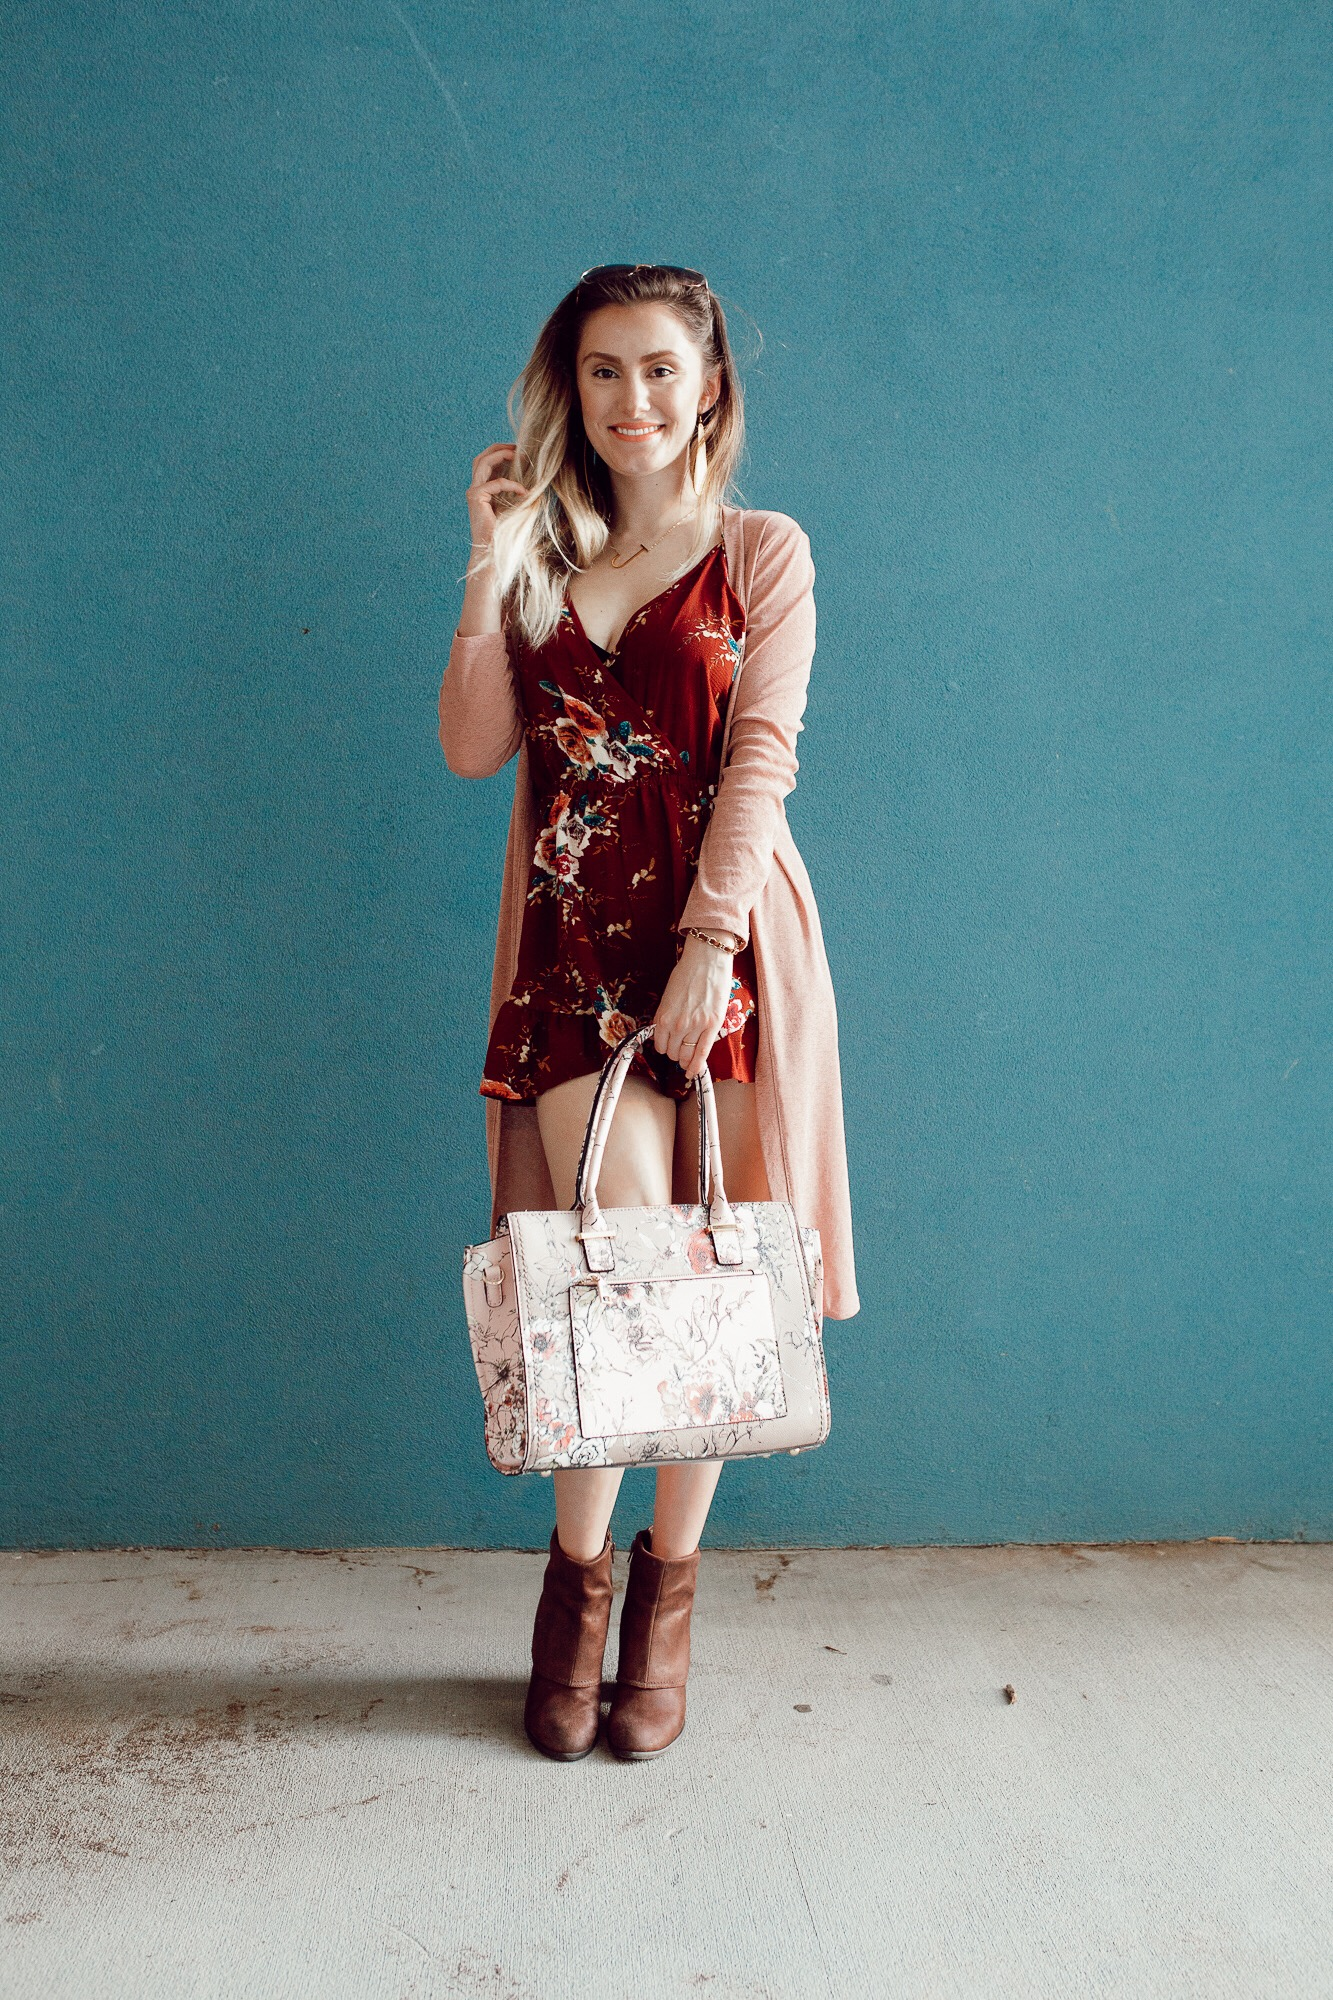 Summer to fall transition outfit by popular North Carolina fashion blogger Jessica Linn. Burgundy floral print romper from Copper Bloom, pink duster cardigan from Romwe, boots from Fergalicious by Fergie.